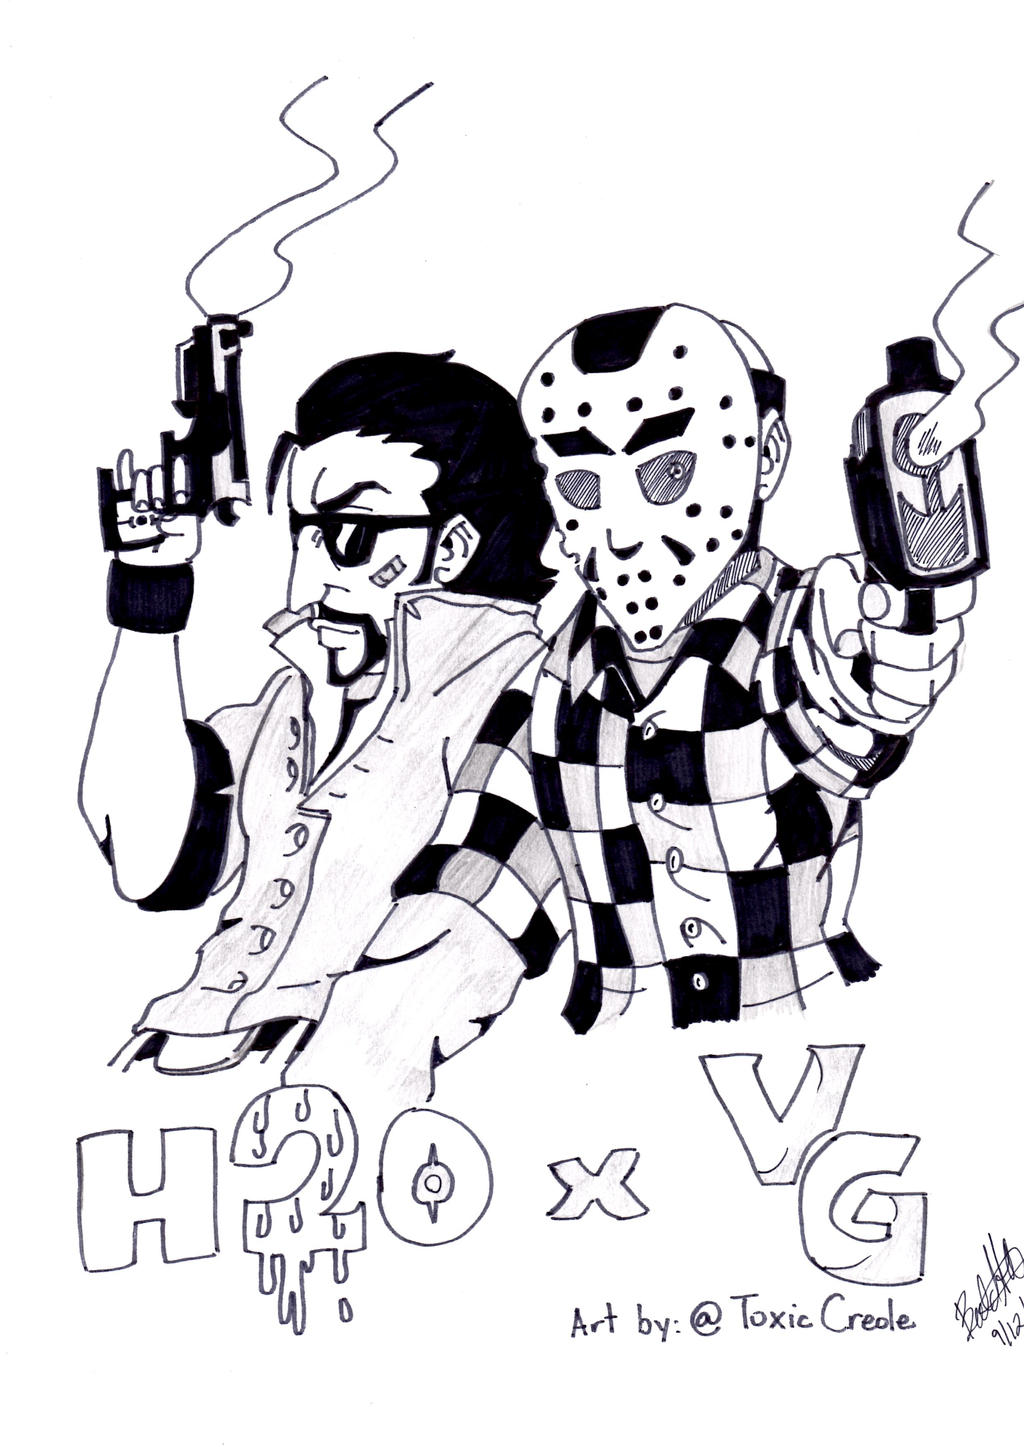 H20 Delirious x VanossGaming  H20 Delirious Drawing